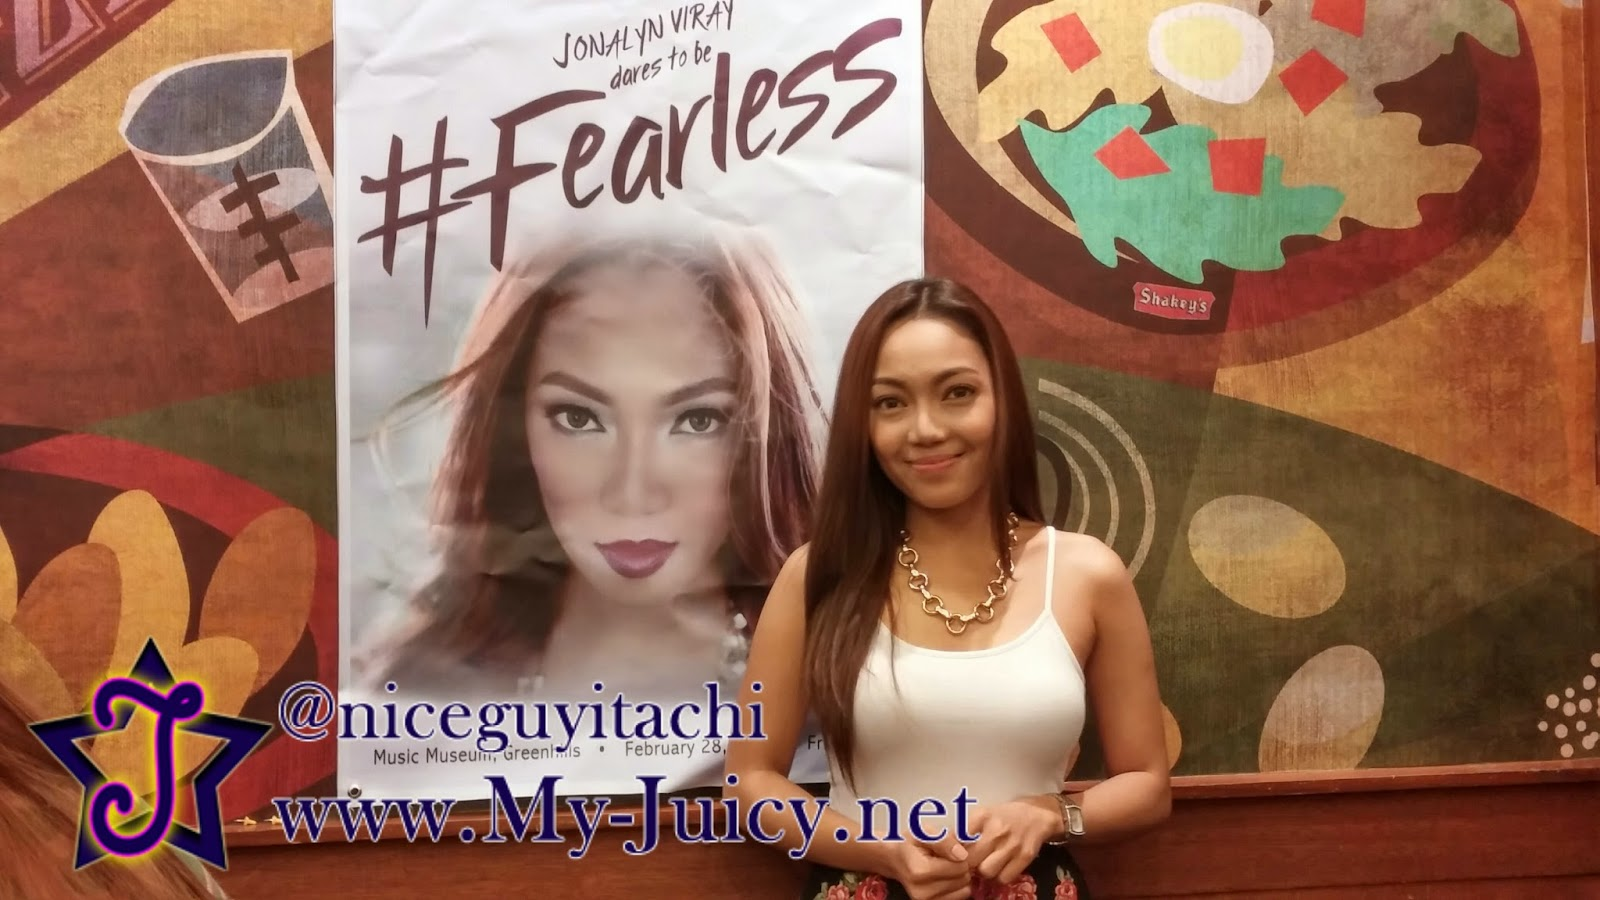 Don't miss to watch Jonalyn Viray's #Fearless Concert on TV